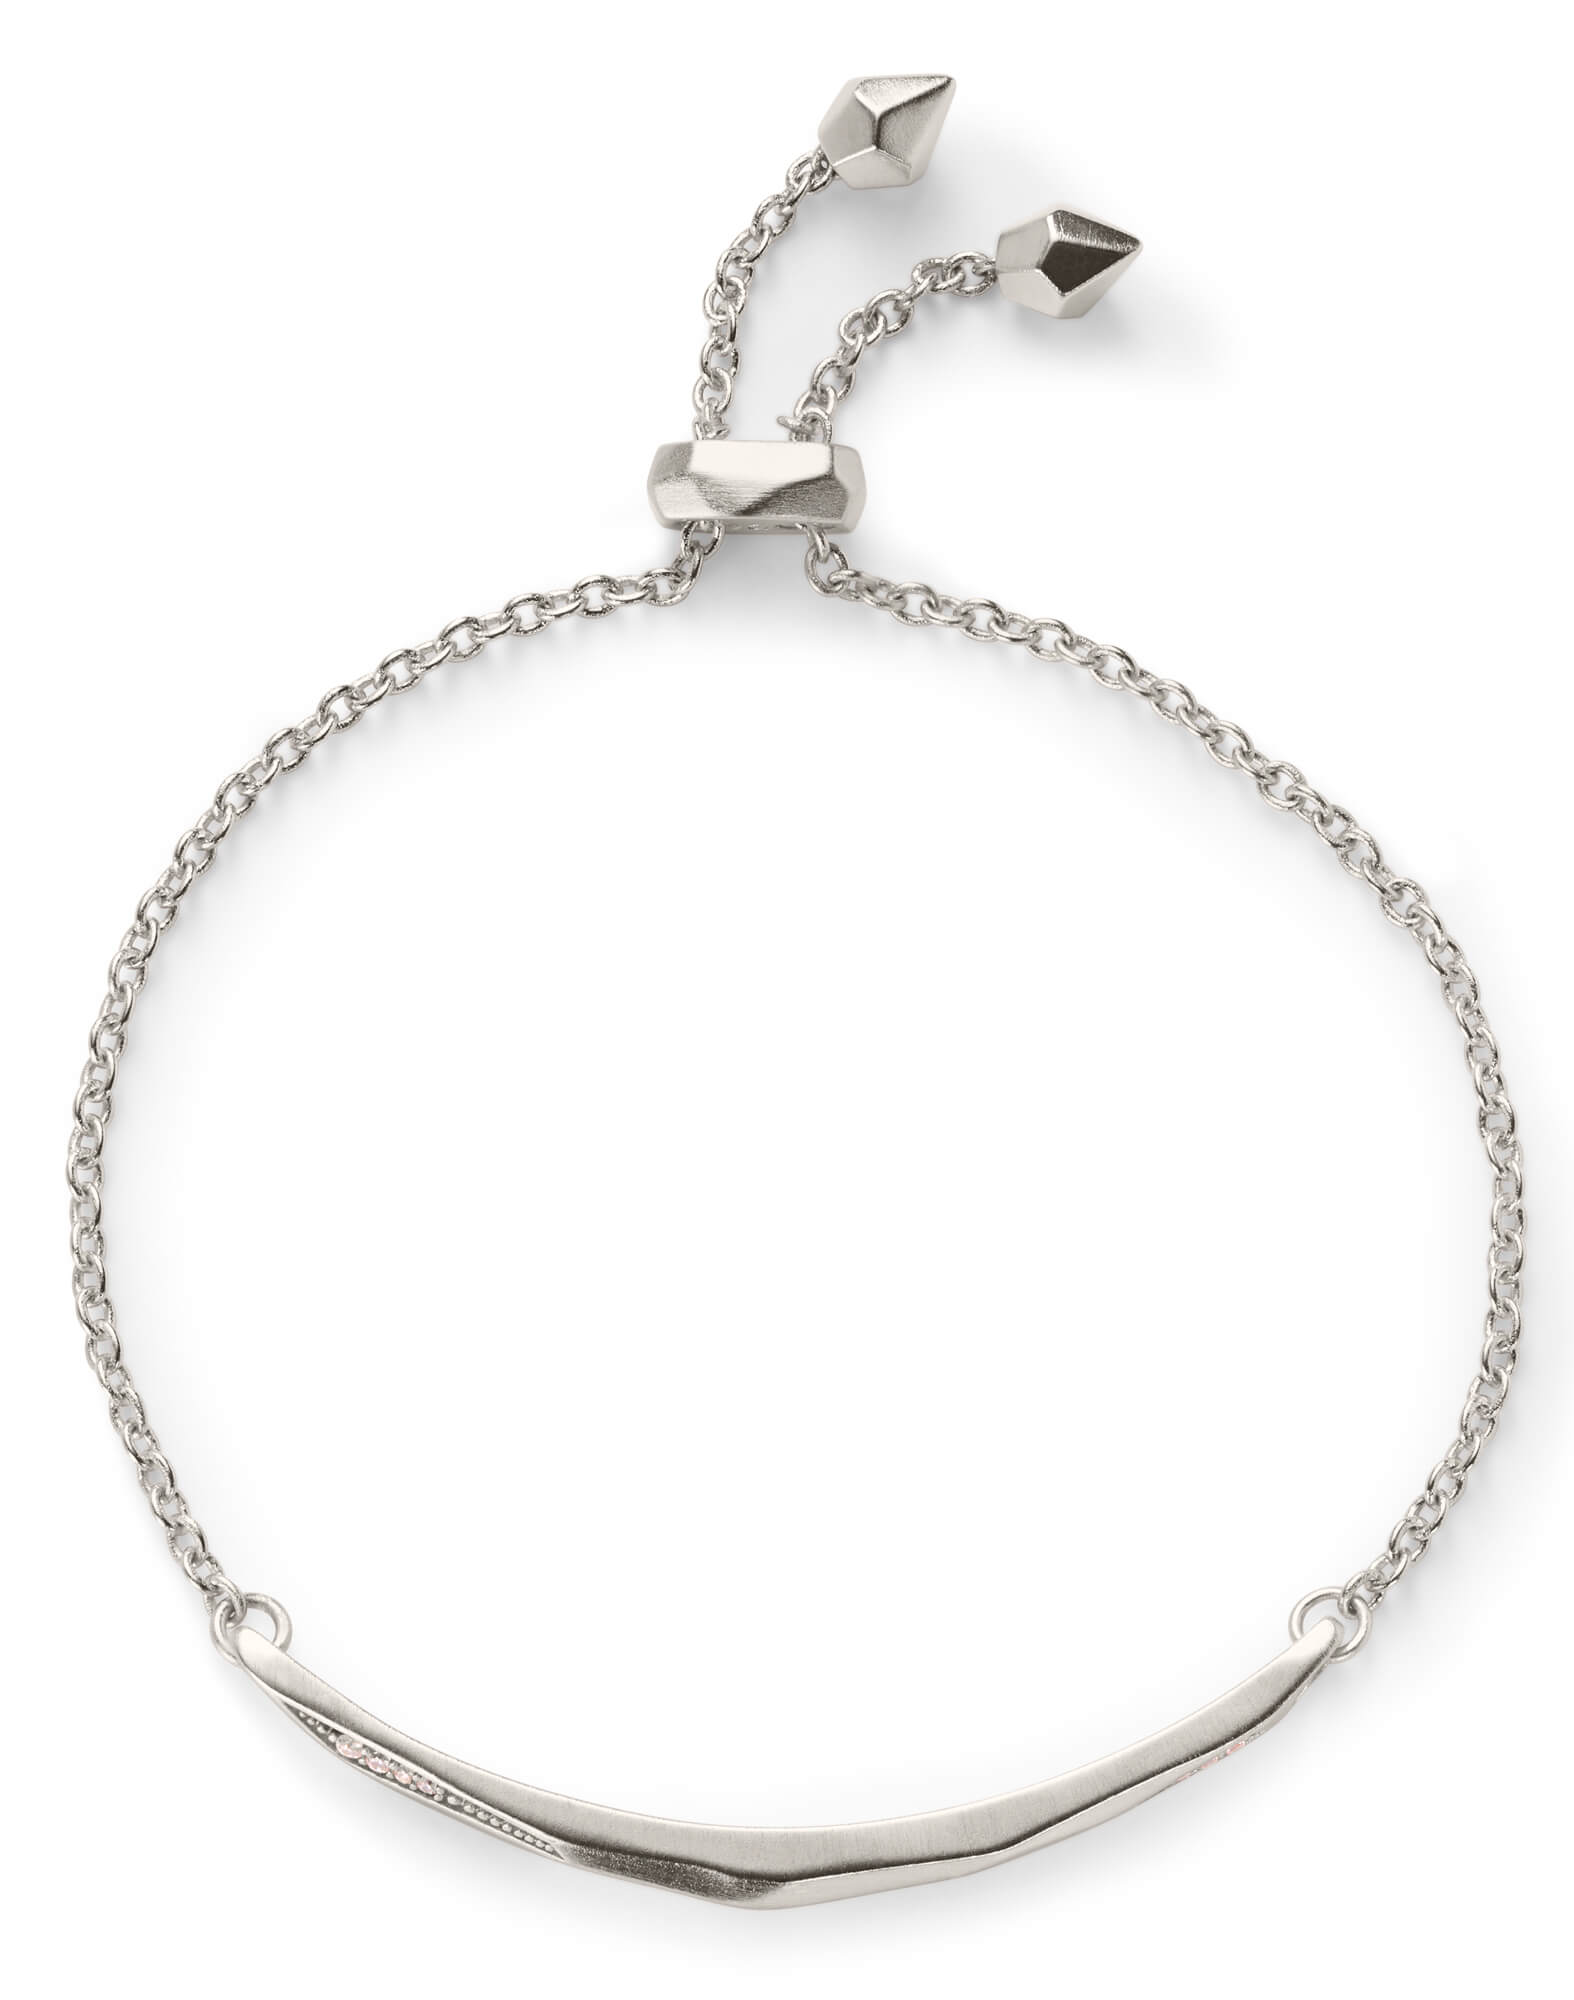 Angela Adjustable Chain Bracelet In Silver